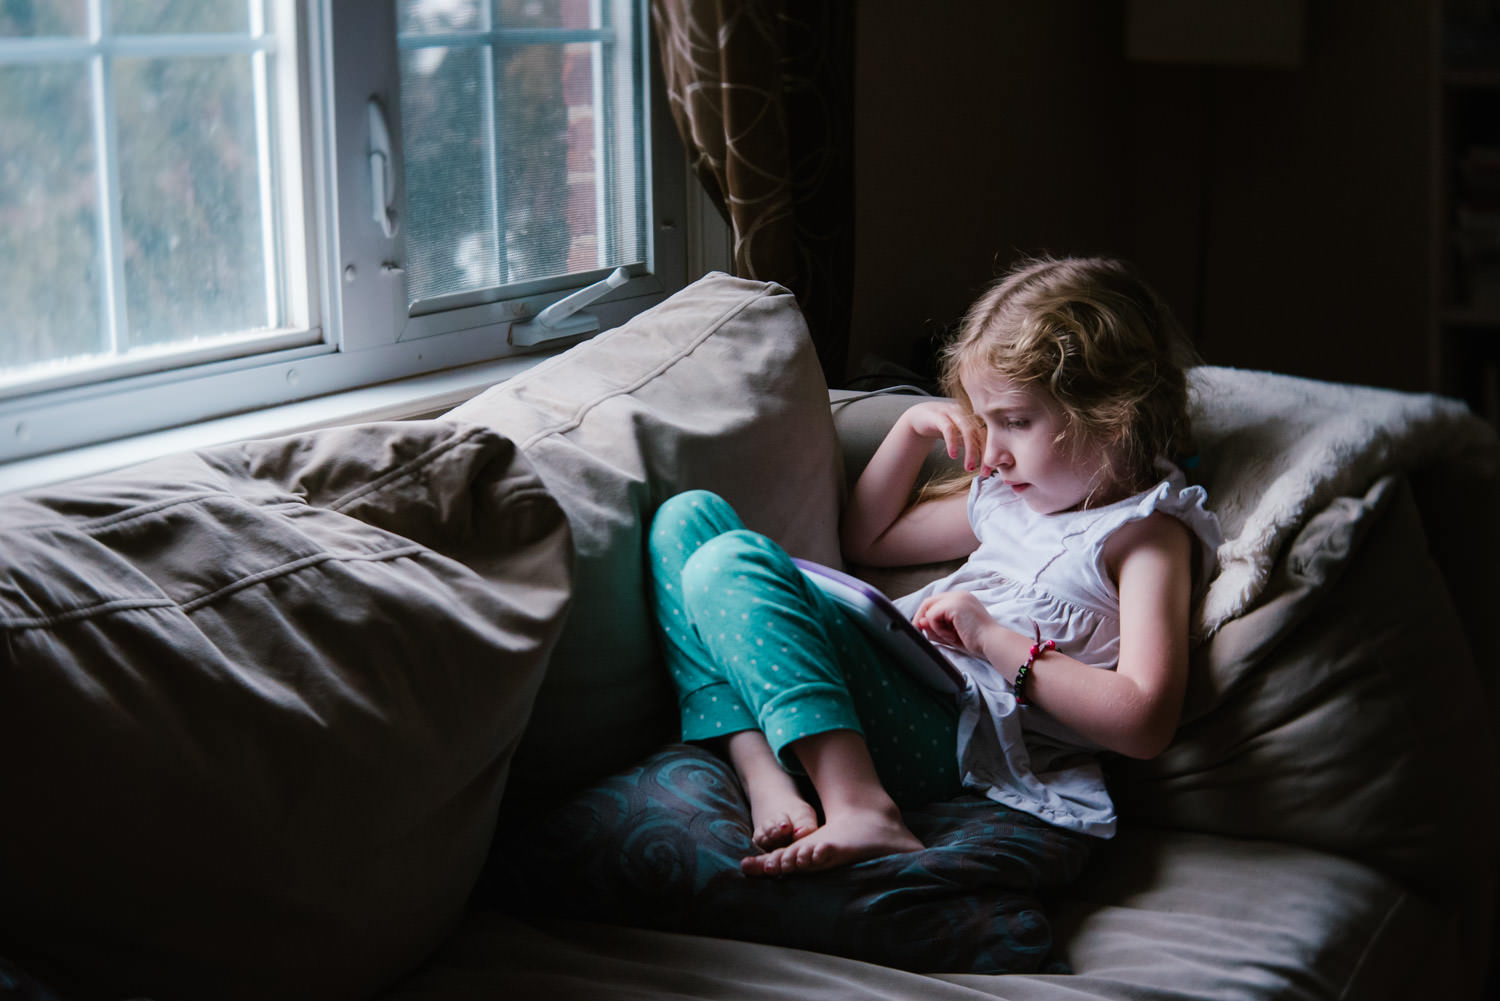 A little girl plays with a tablet on the couch.